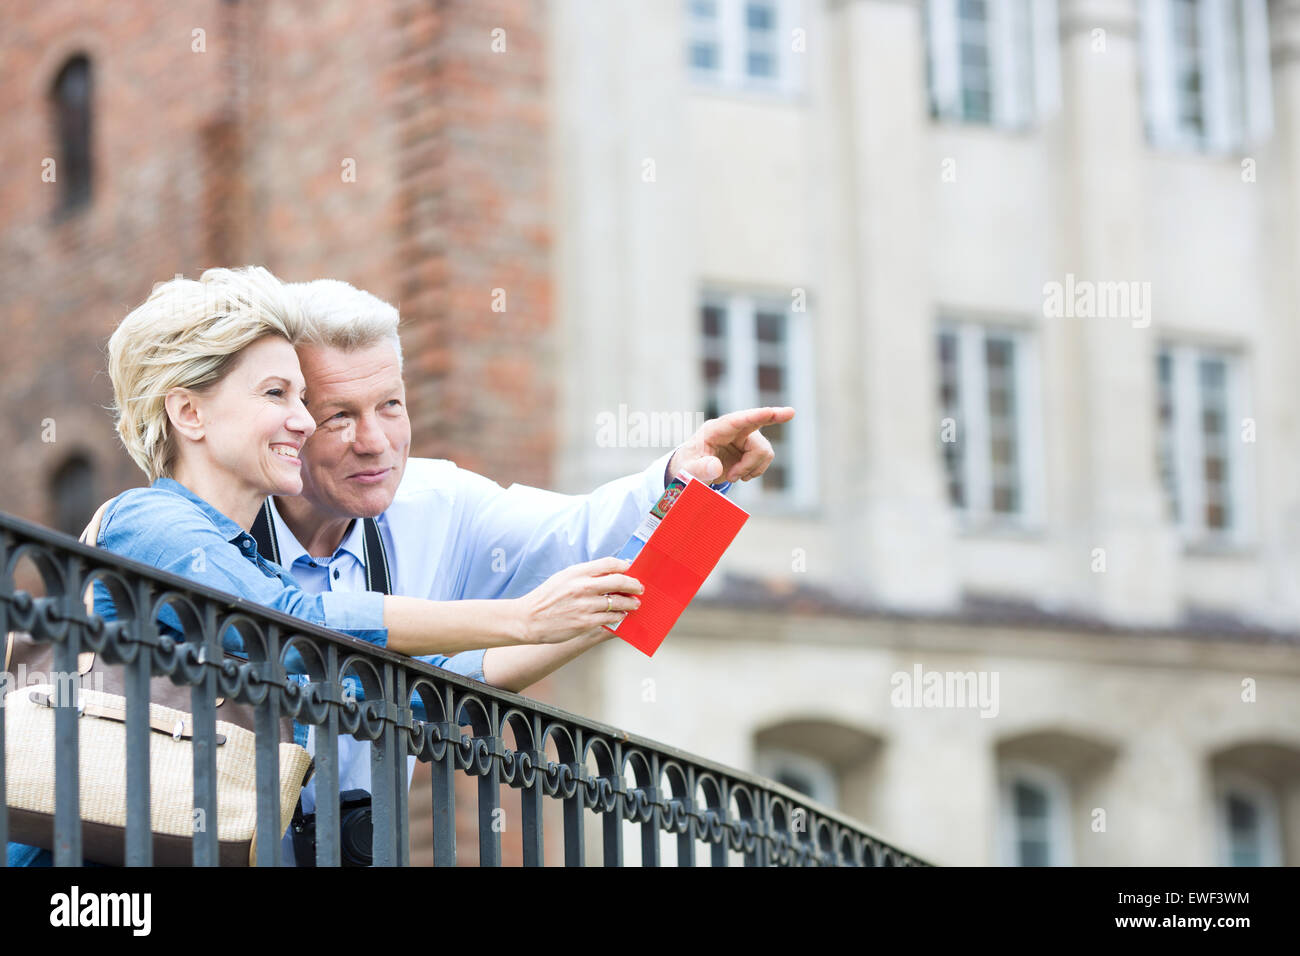 Smiling middle-aged man showing something to woman with guidebook in city - Stock Image